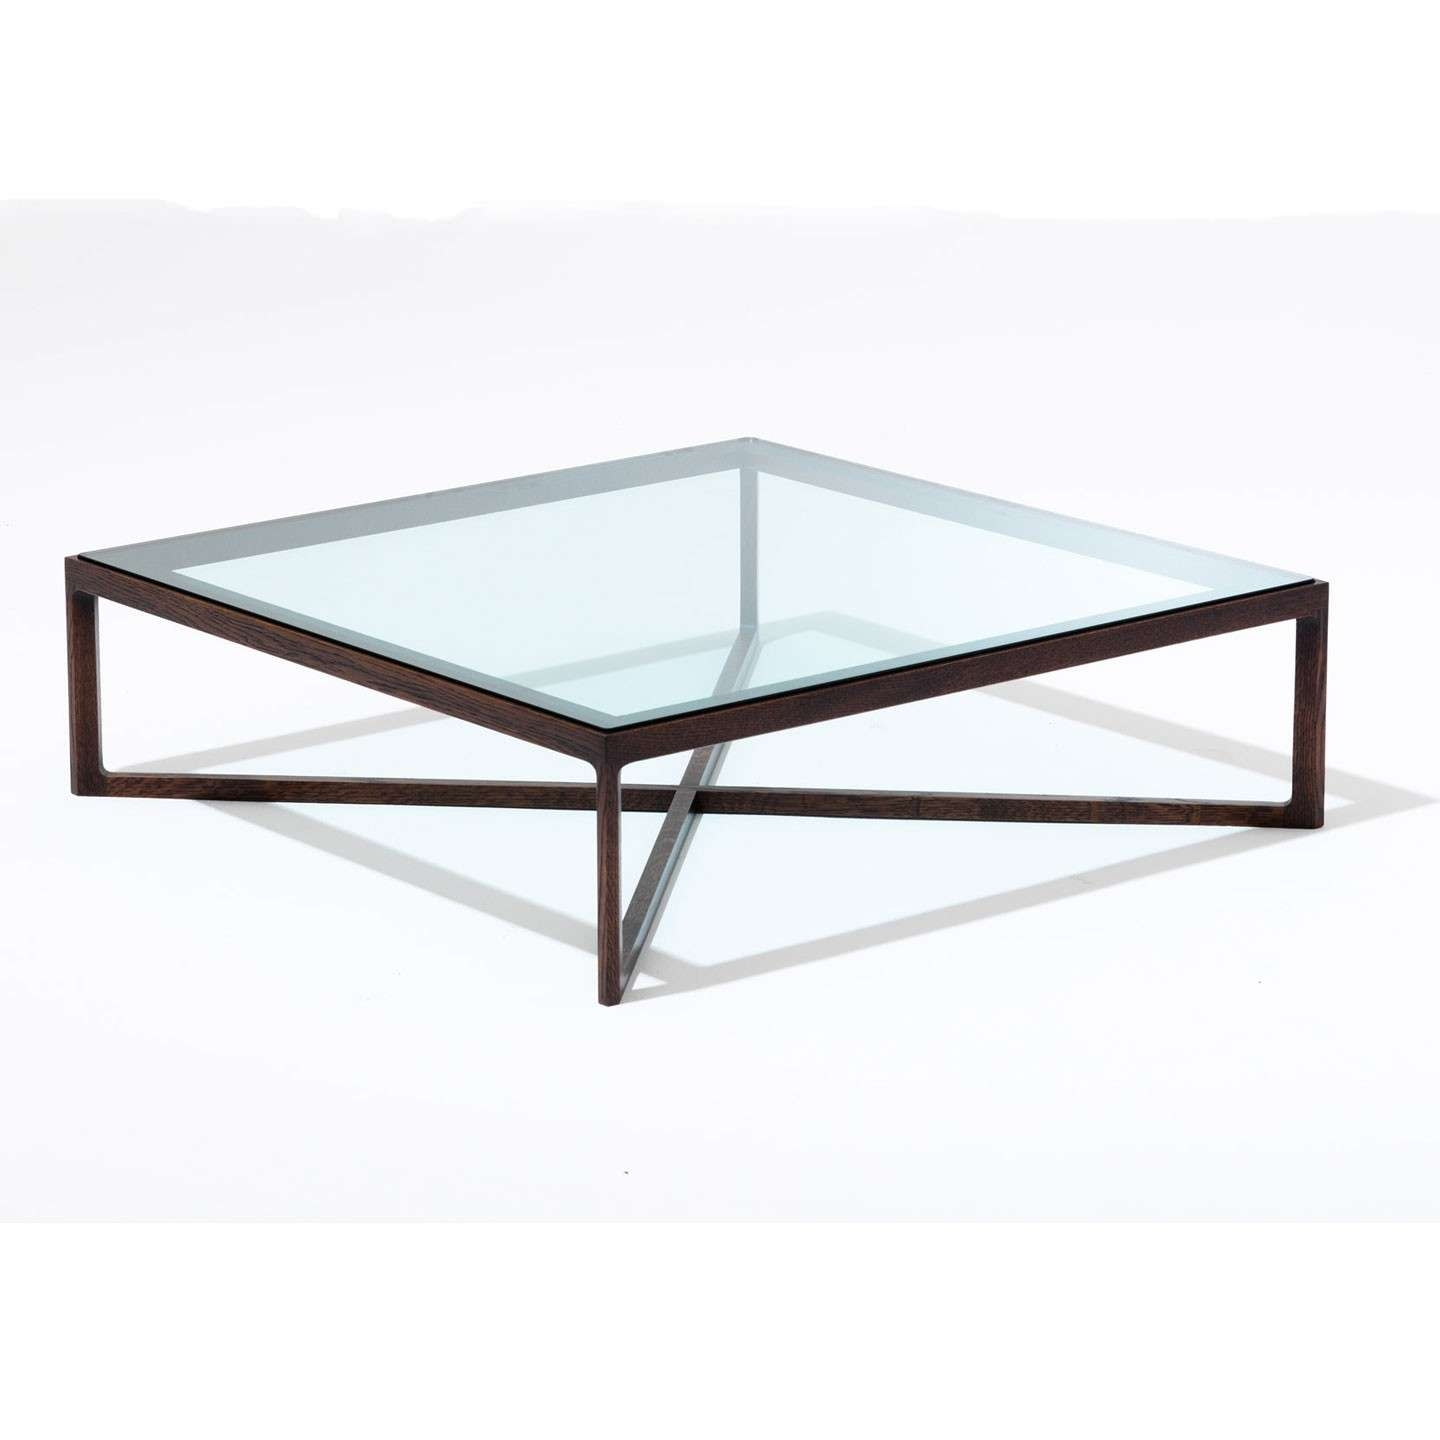 Decorations : Interior Living Room Appealing Low Profile Tempered Throughout 2018 Modern Square Glass Coffee Tables (View 7 of 20)